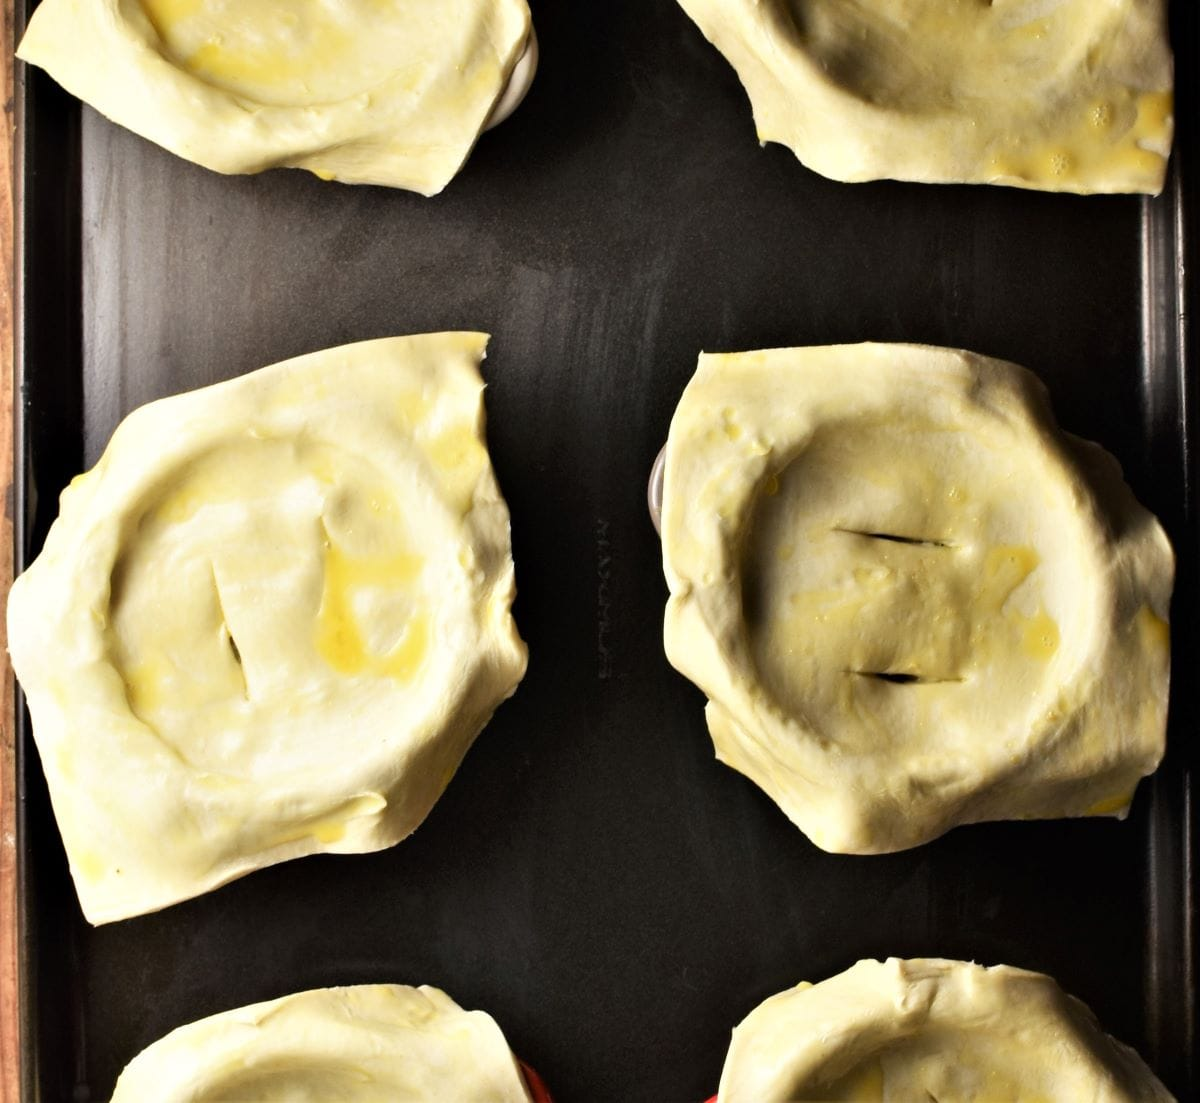 Uncooked pies with pastry squares on top.